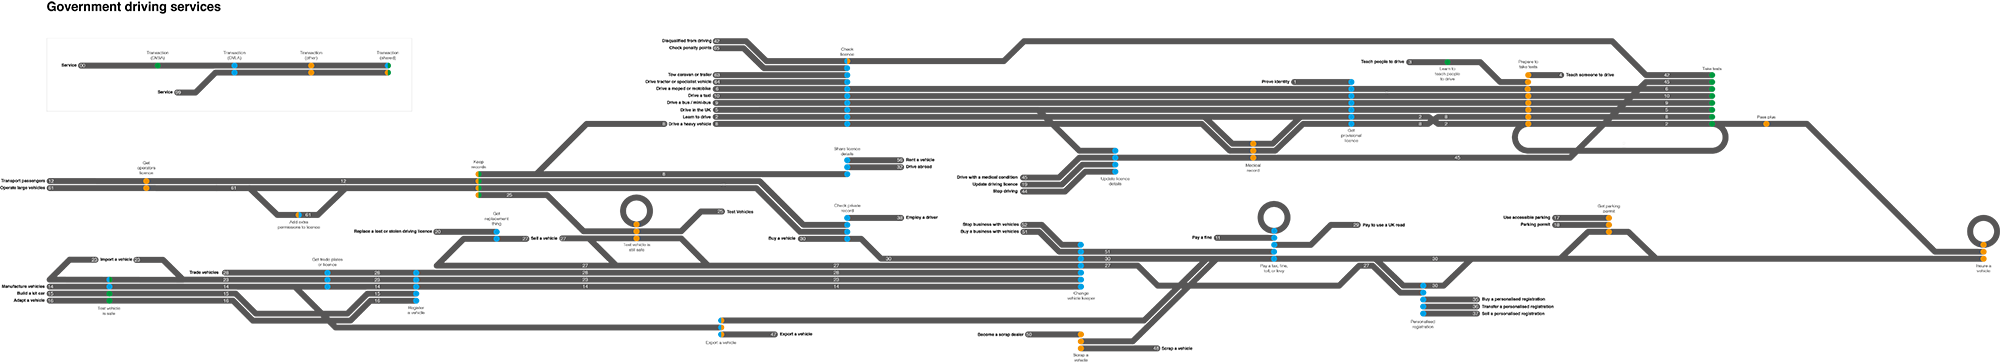 Low resolution image of the diagram created by DVLA, DVSA and GDS while mapping driving services.